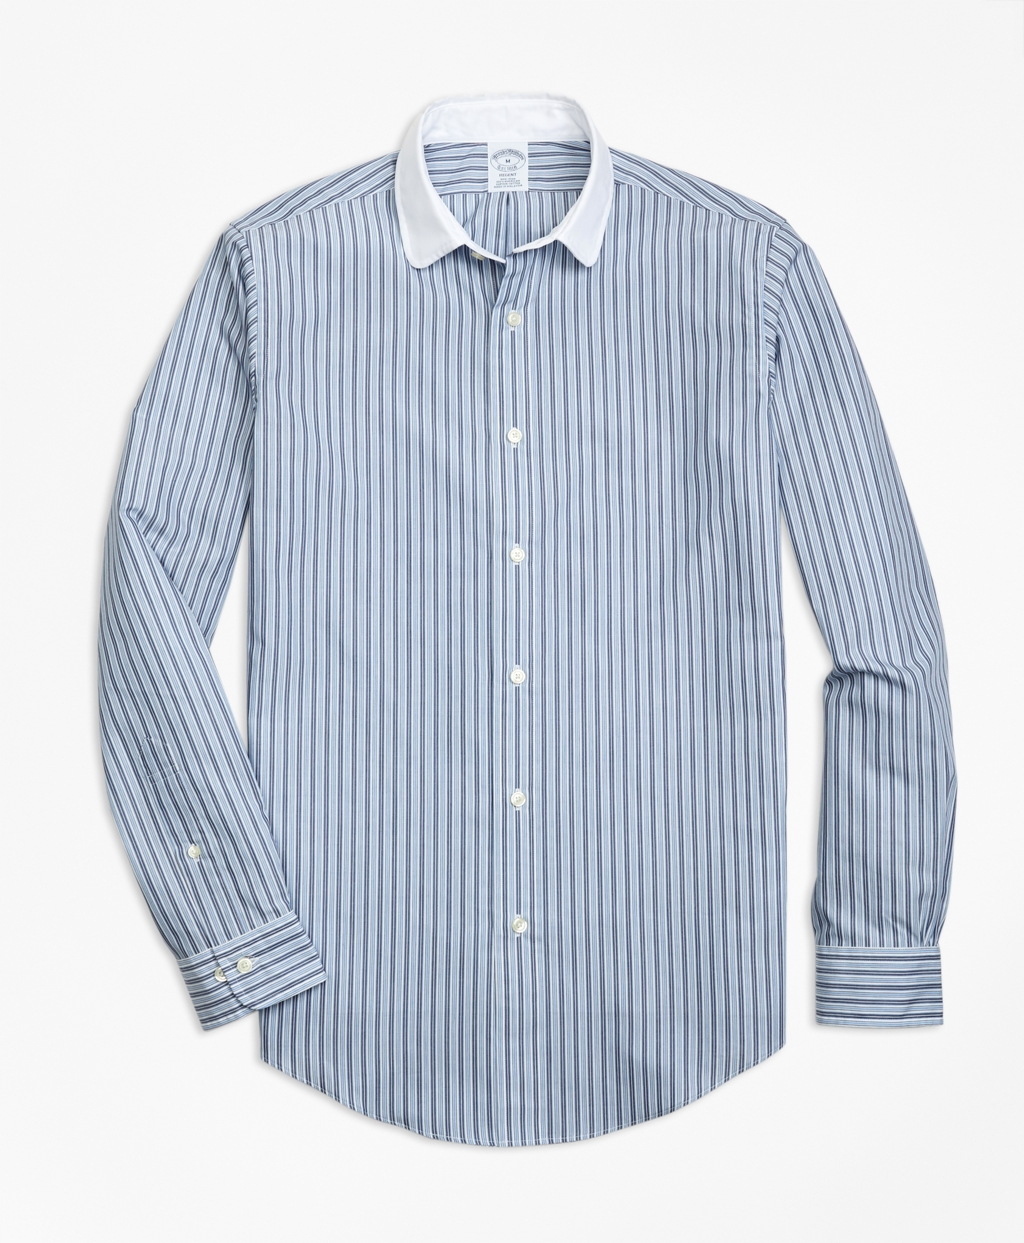 1920s Style Mens Shirts | Peaky Blinders Shirts and Collars Brooks Brothers Mens Regent Fit Heathered Stripe Sport Shirt $92.00 AT vintagedancer.com